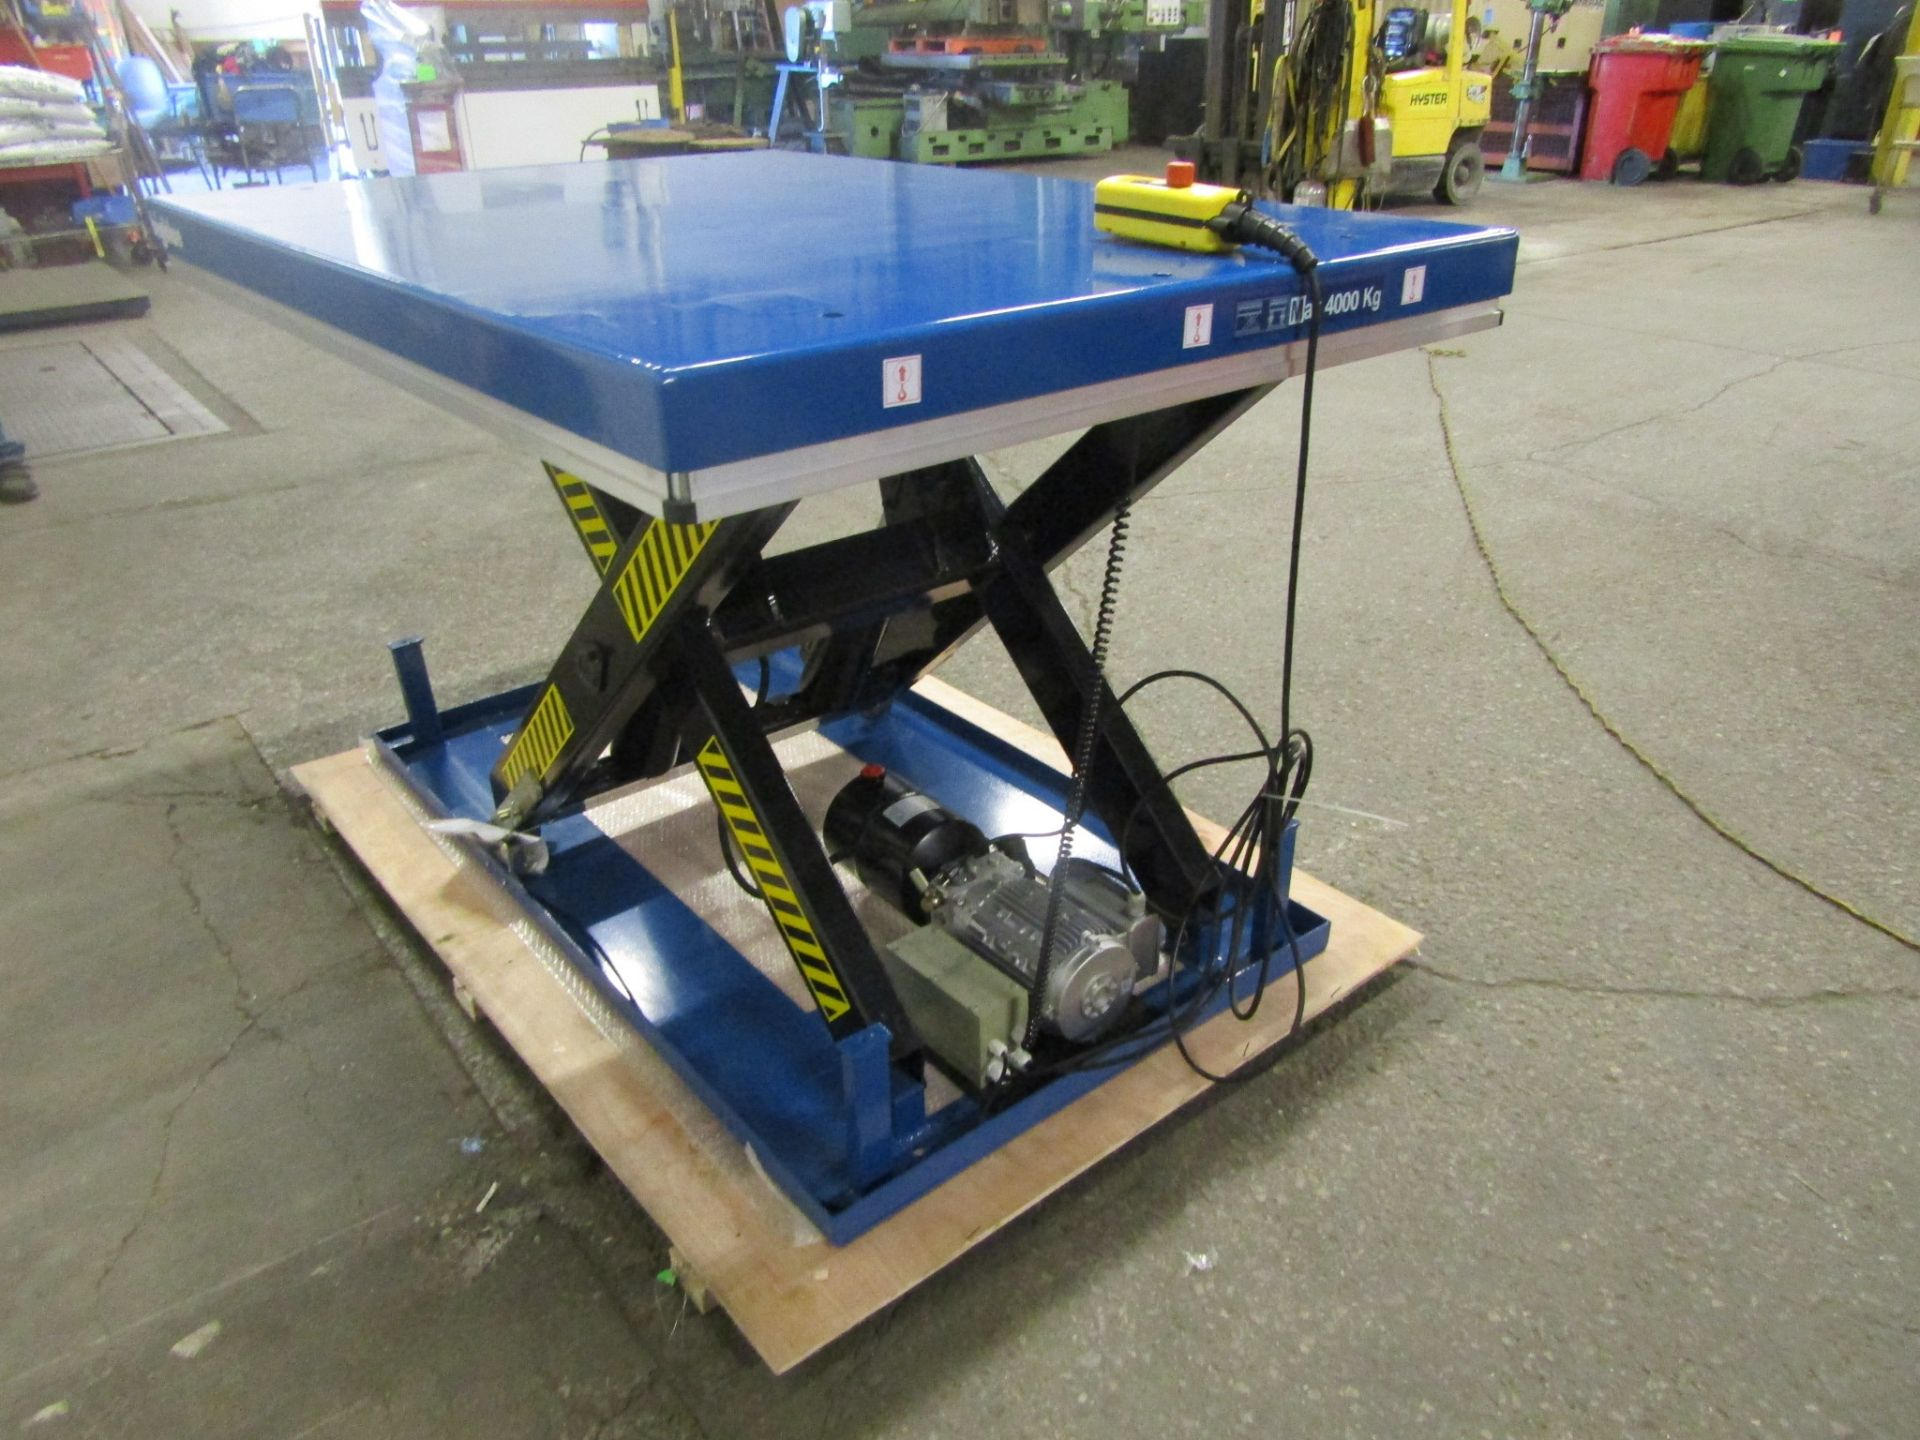 """HW Hydraulic Lift Table 48"""" x 68"""" x 36"""" lift - 8000lbs capacity - UNUSED and MINT - 115V - Image 2 of 2"""